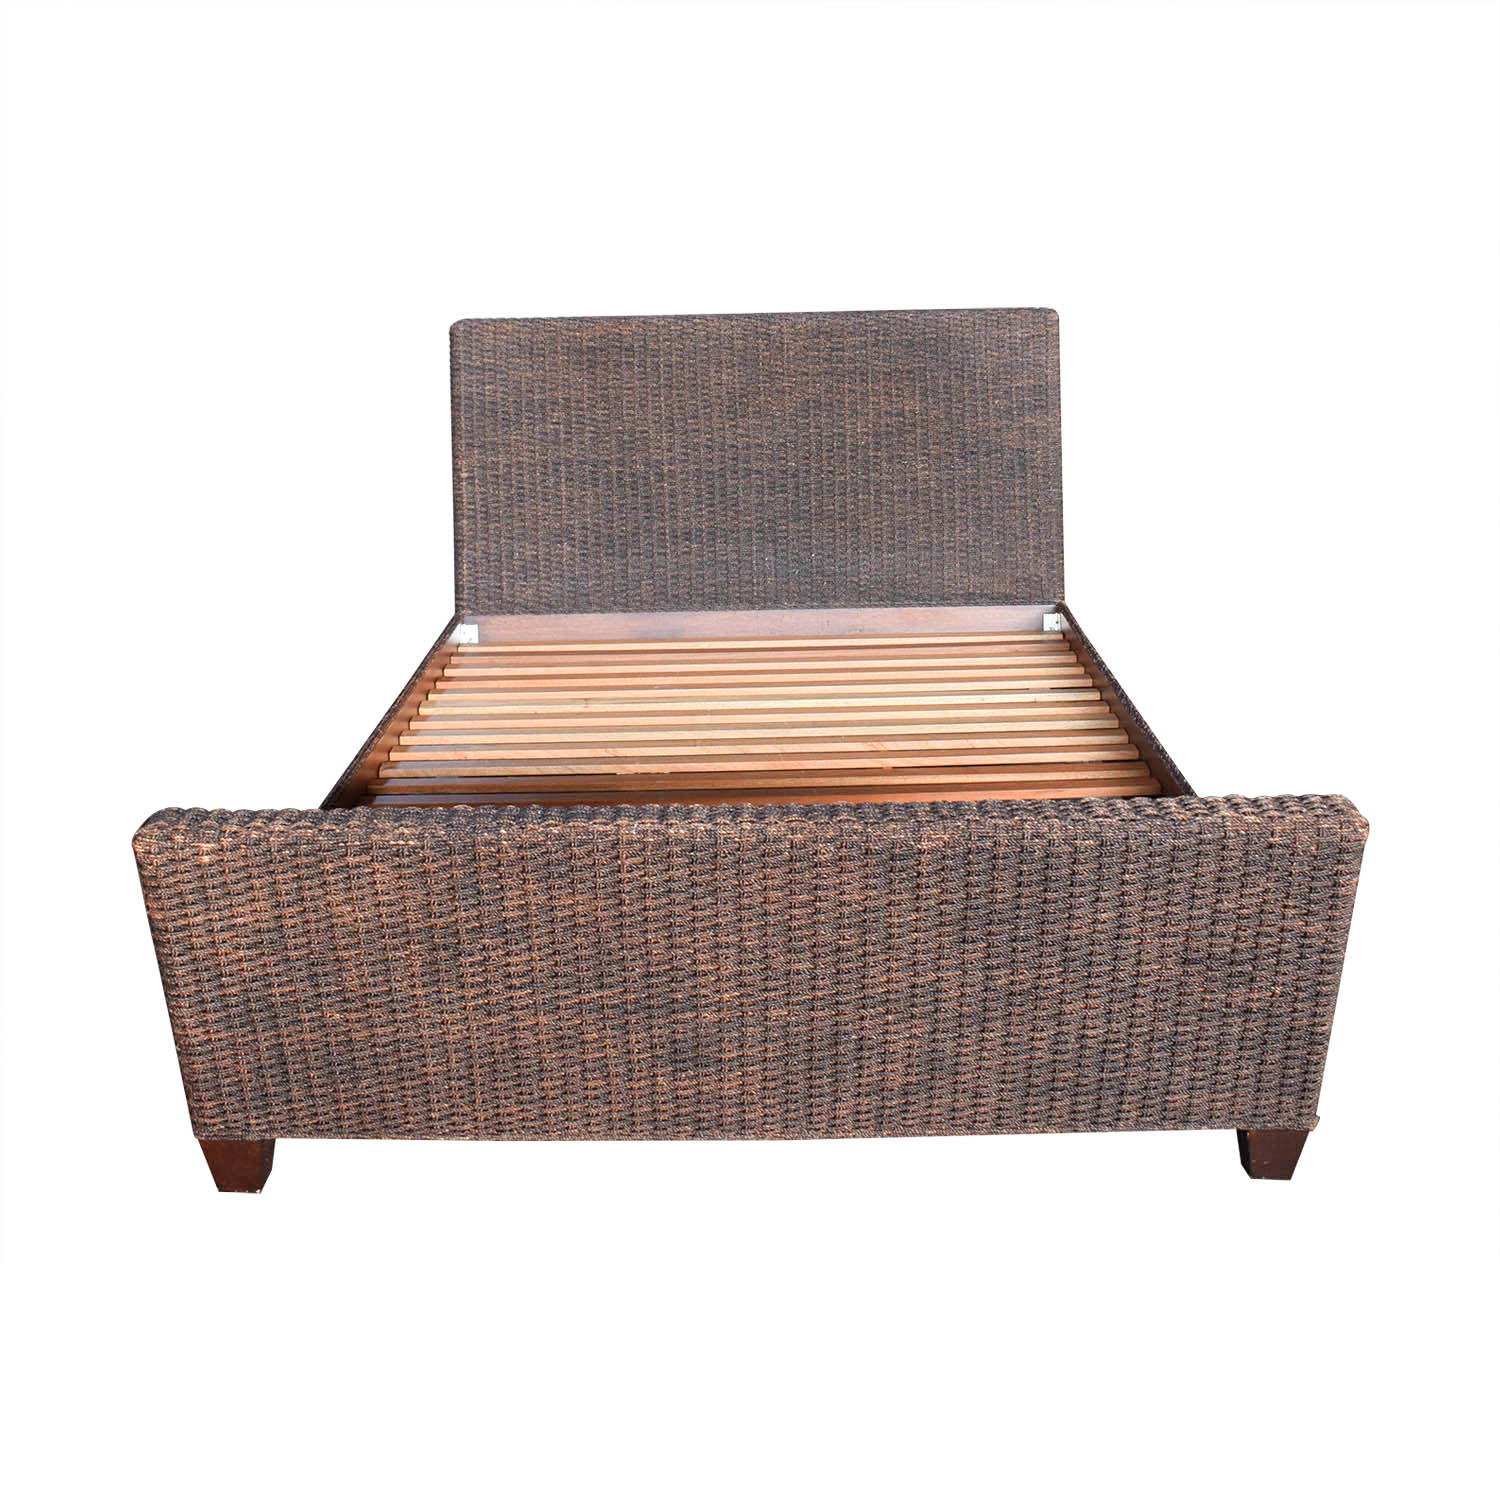 Crate & Barrel Crate & Barrel Woven Queen Bed Frame second hand